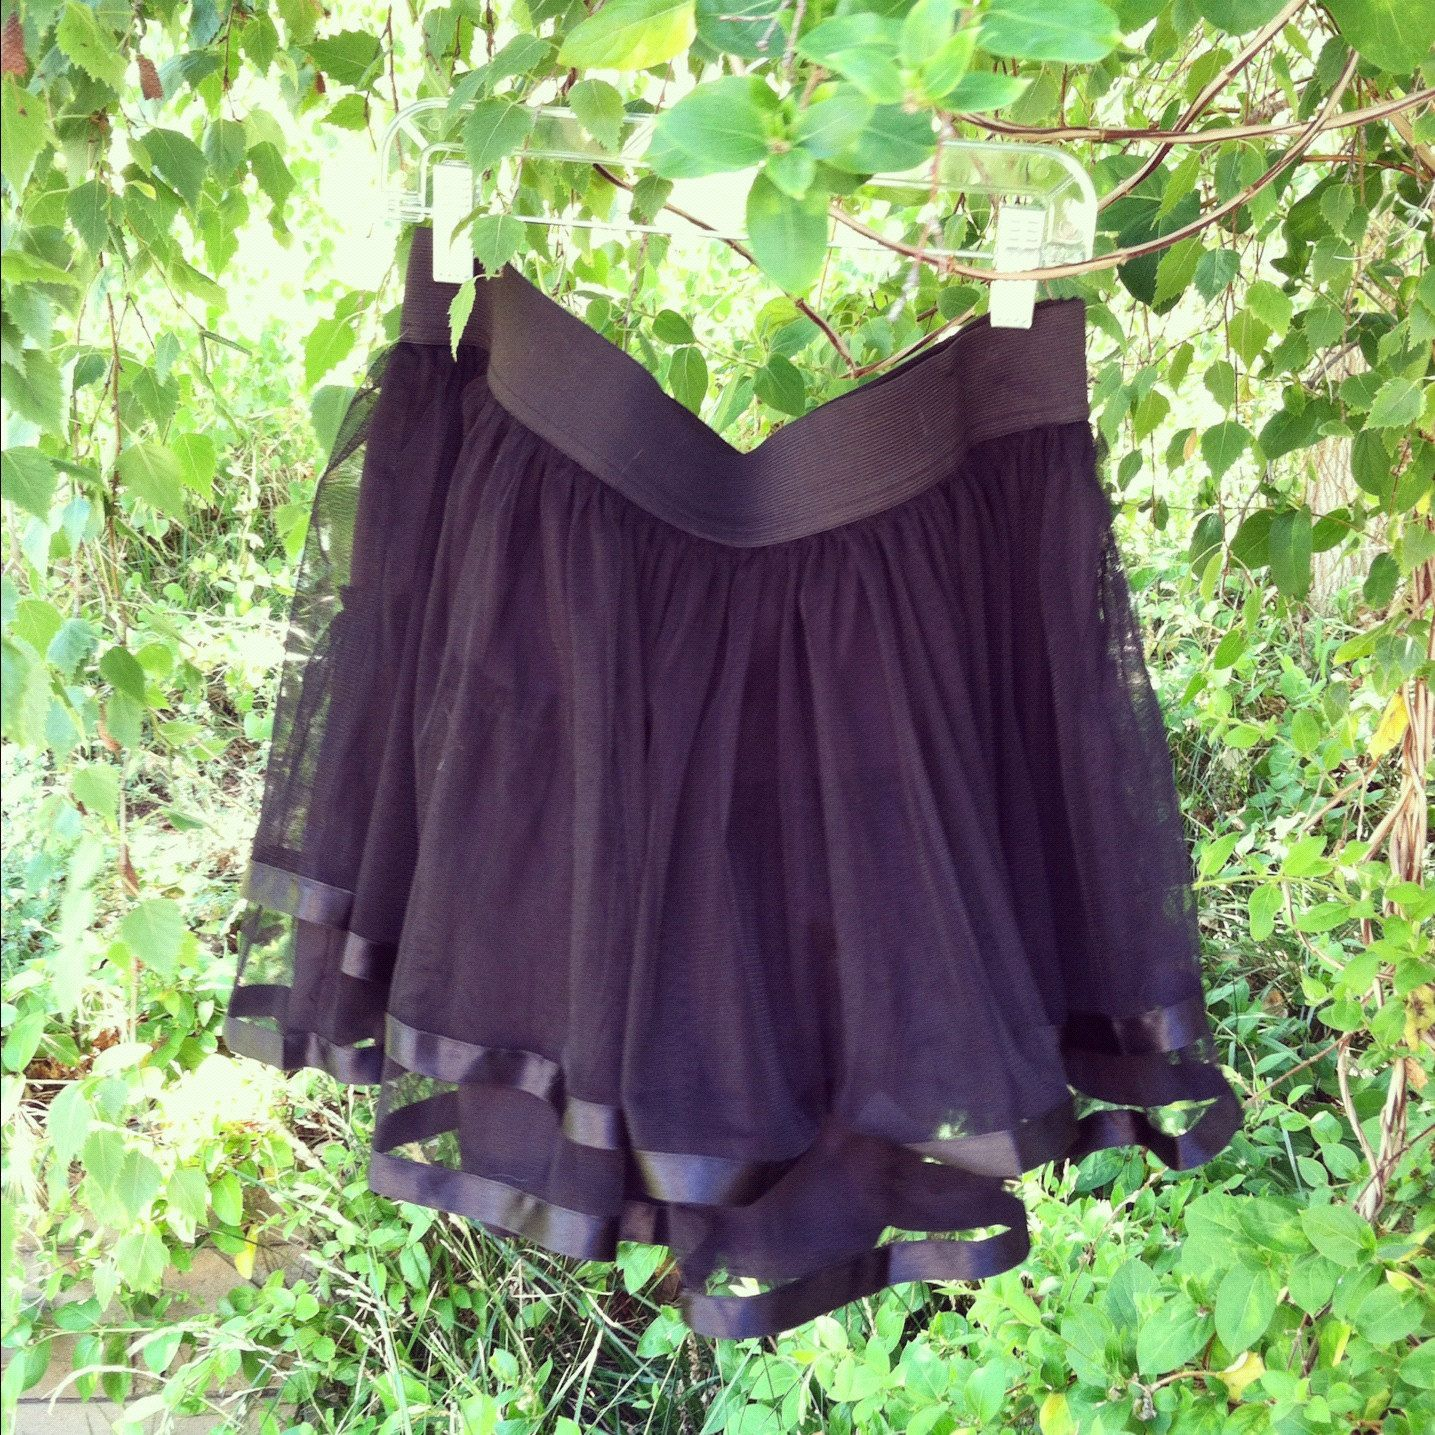 67a01f4ced Black Tulle Skirt with Satin Trim For mommy? | Shelby's 1st Birthday ...